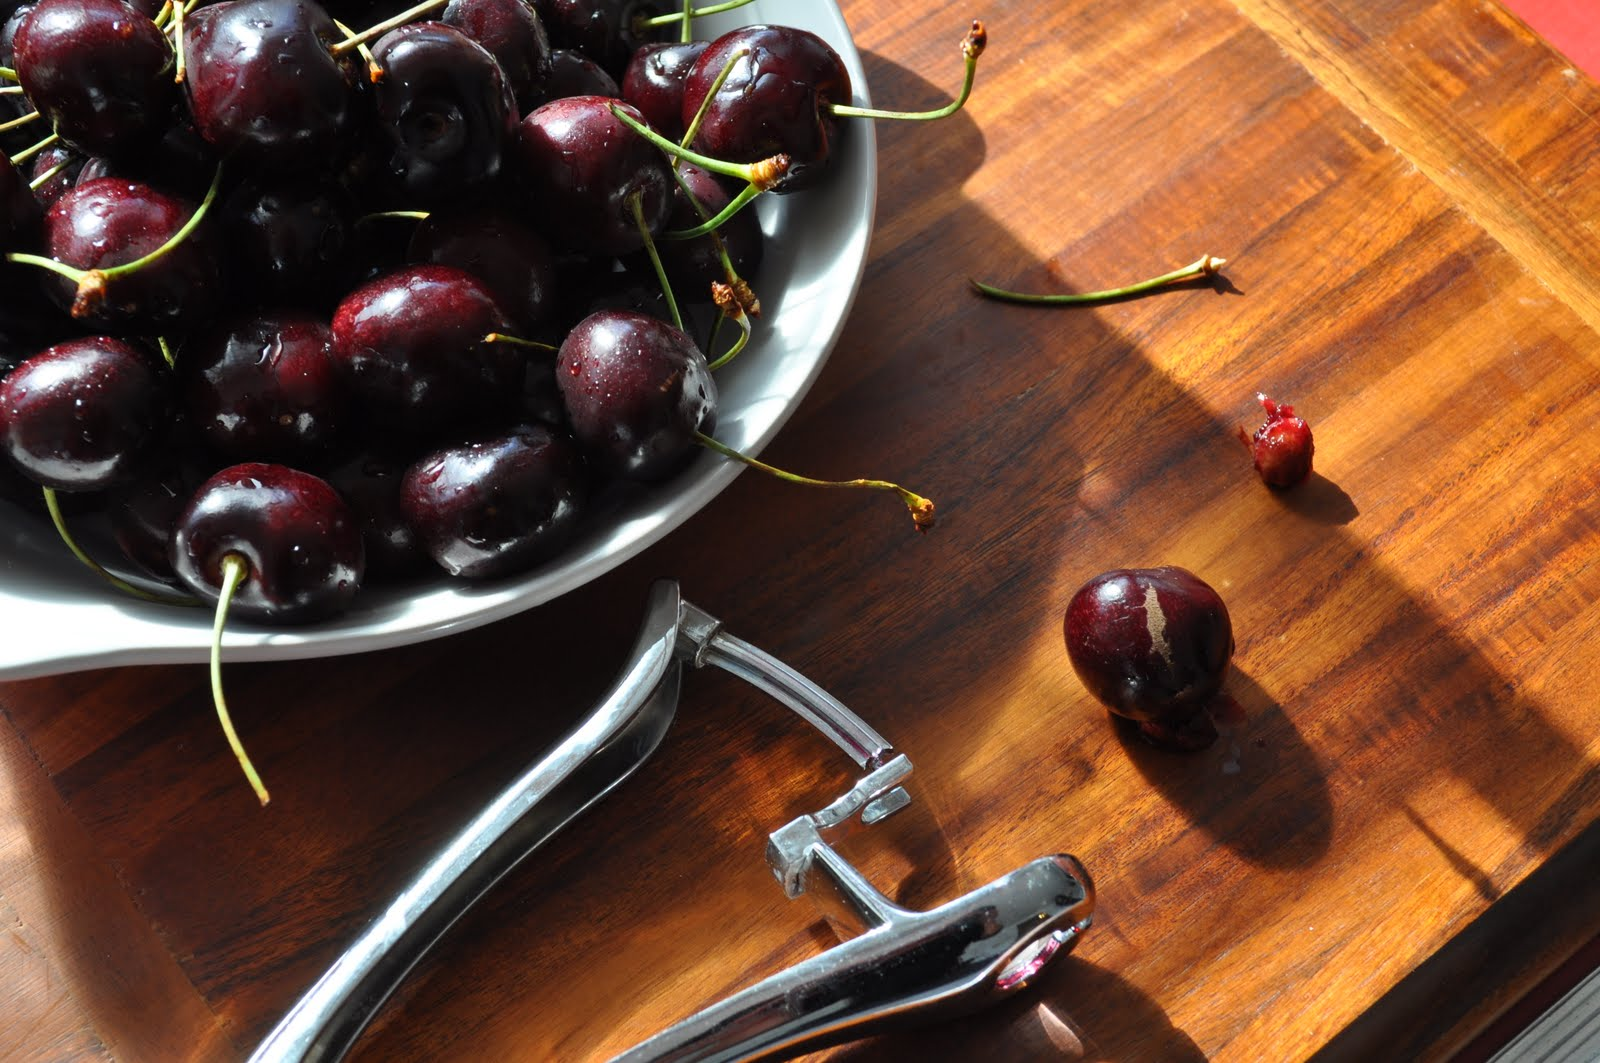 """When You Think Cherries, Do You Think €�salsa""""? Ya, Me Neither But I Had  This Giant Bag Of Cherries That Are Absolutely The Deepest Darkest Red And  So Sweet"""